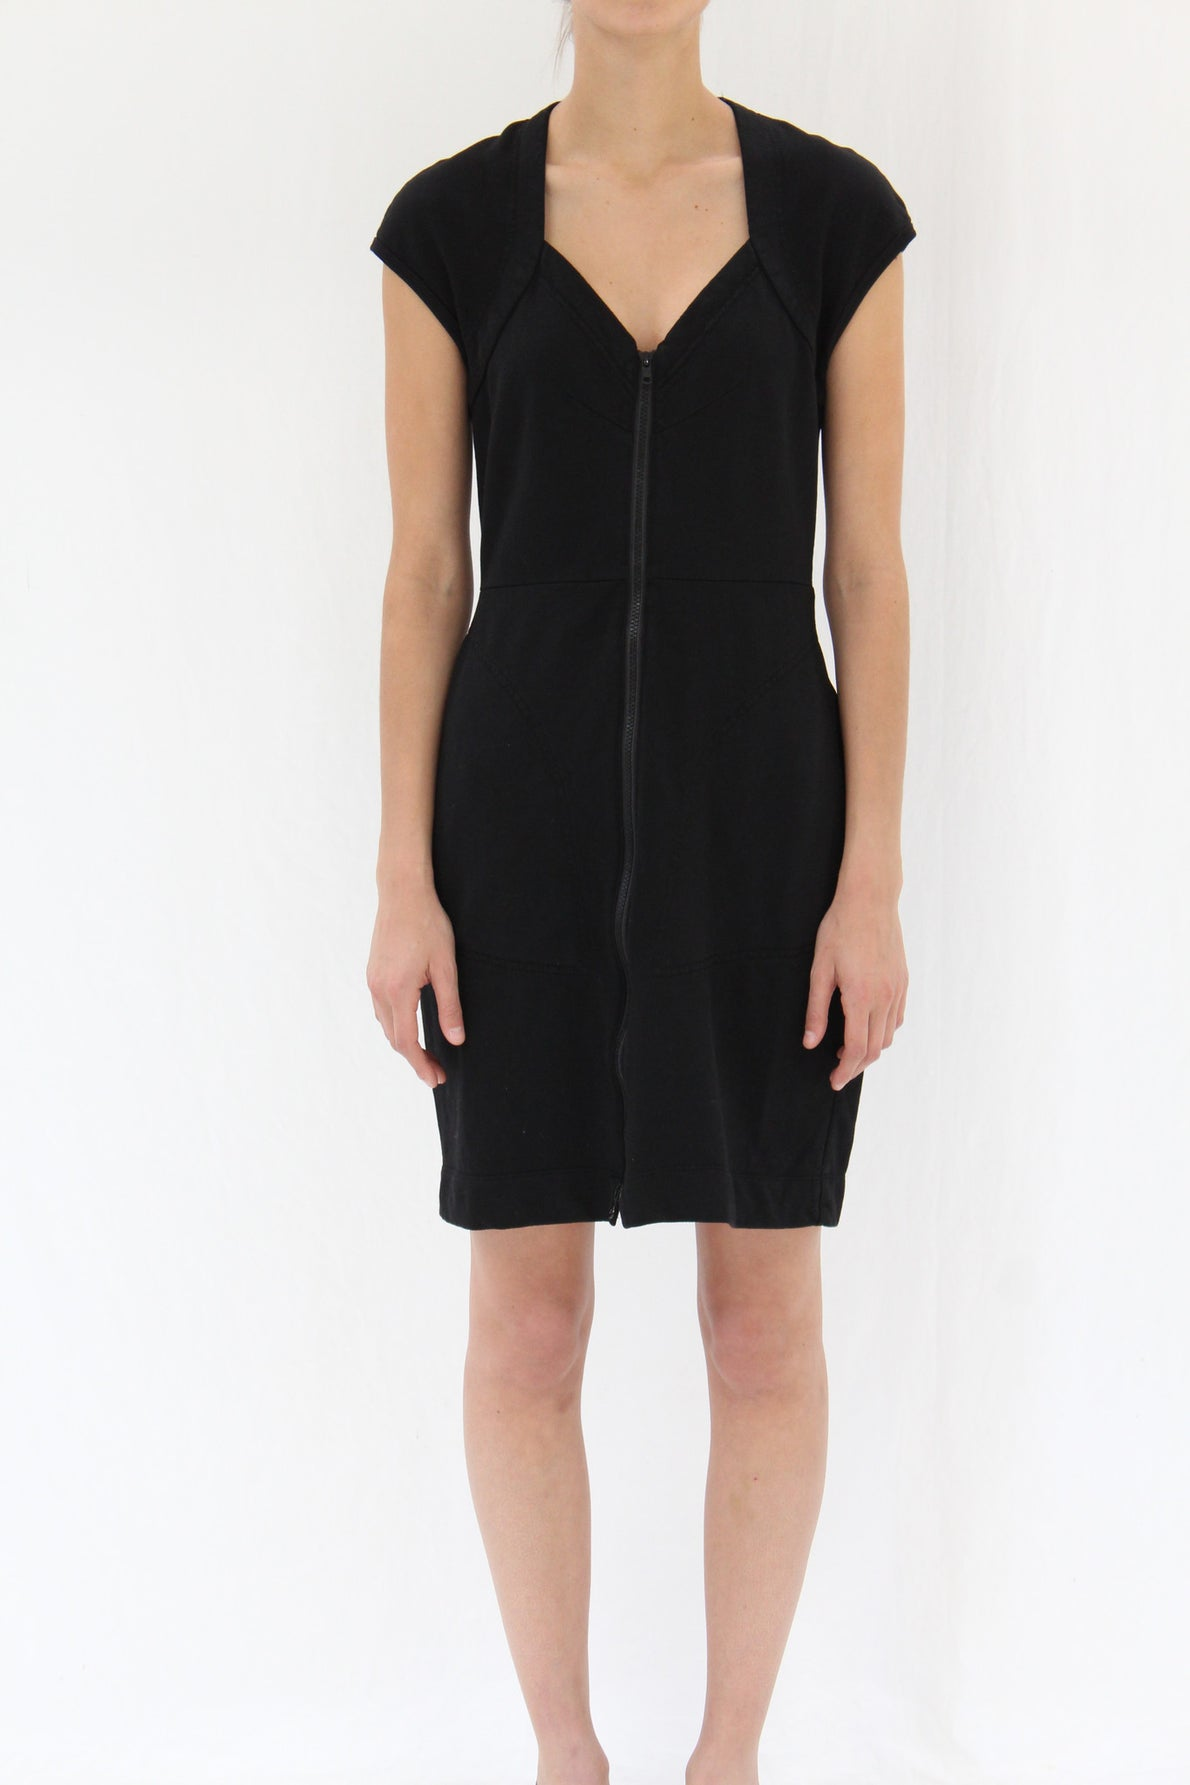 Prairie Underground Go Ask Alice Dress Black